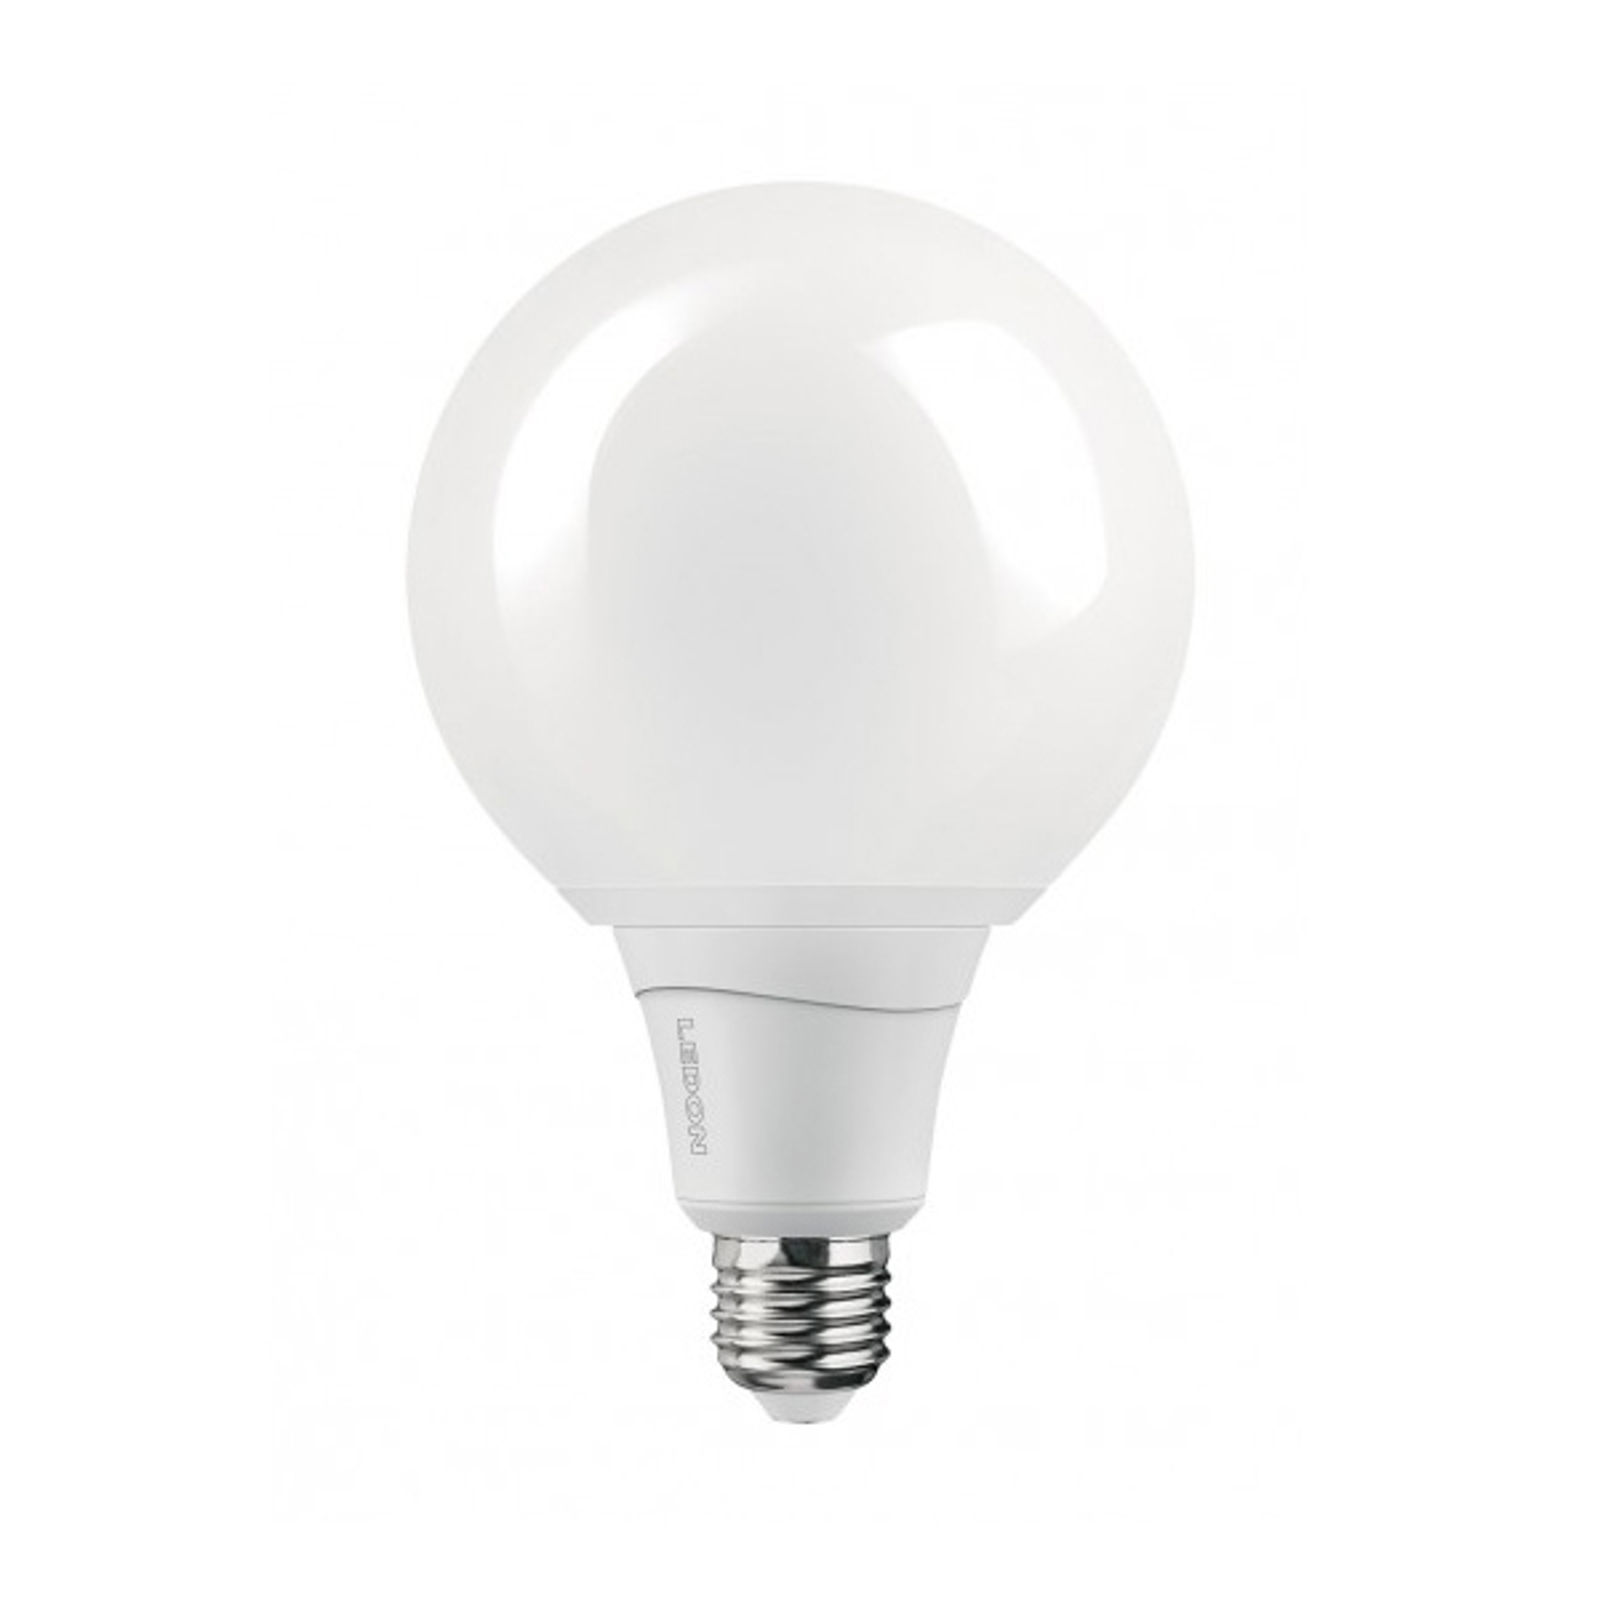 Ampoule globe LED E27 10 W 827/840 G120 color work